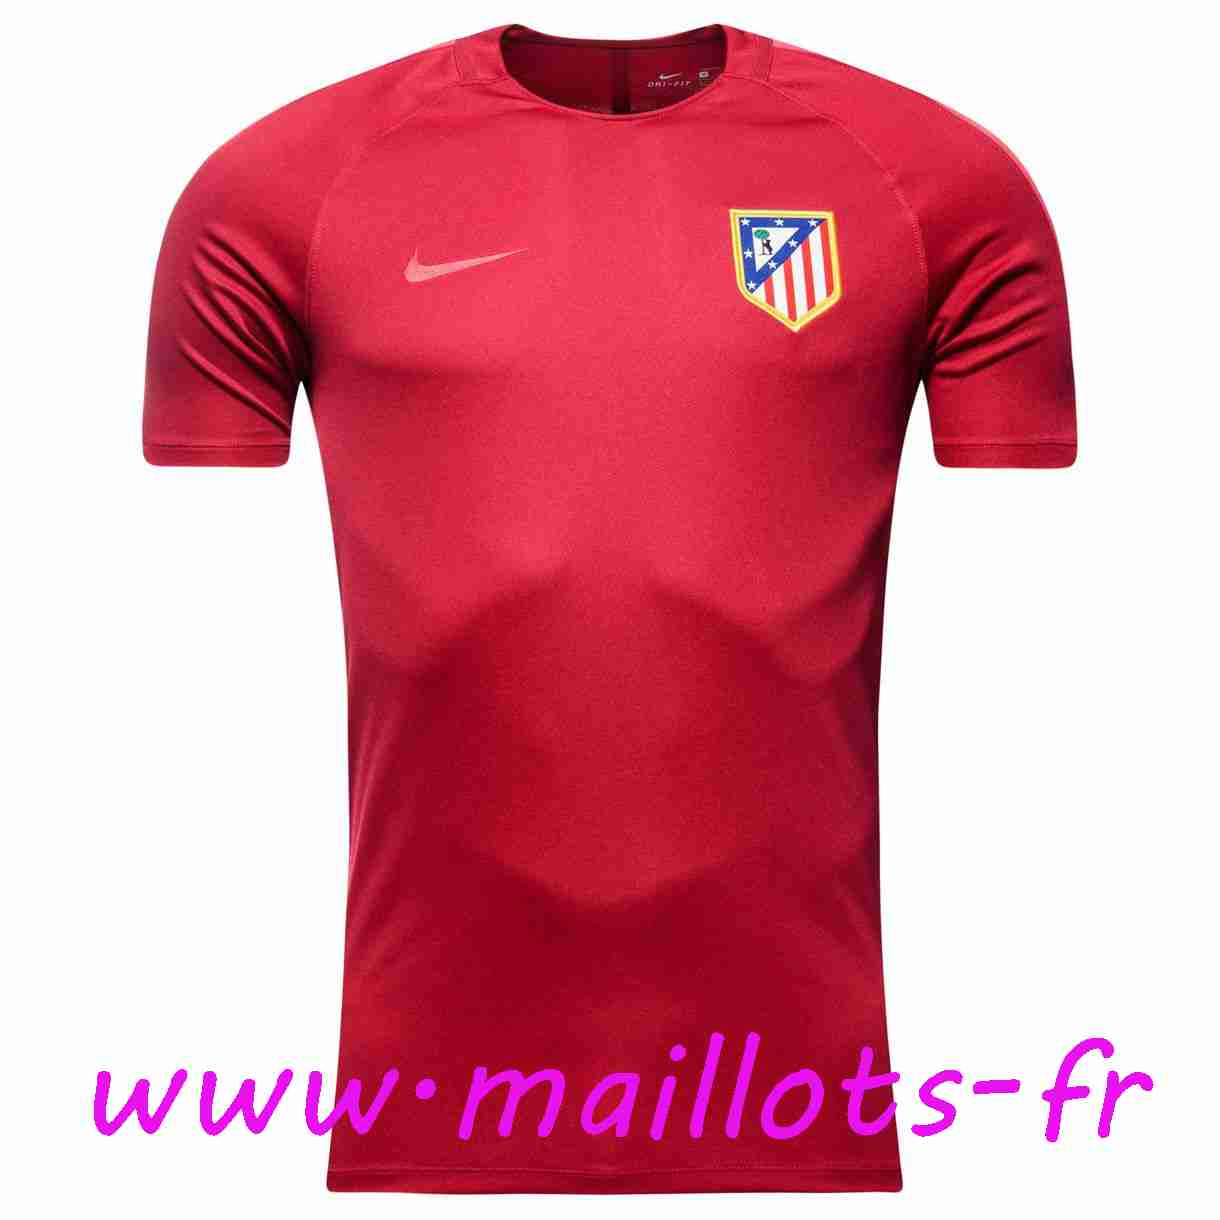 maillots-fr - Training T-Shirt Atletico Madrid Rouge 2016 2017